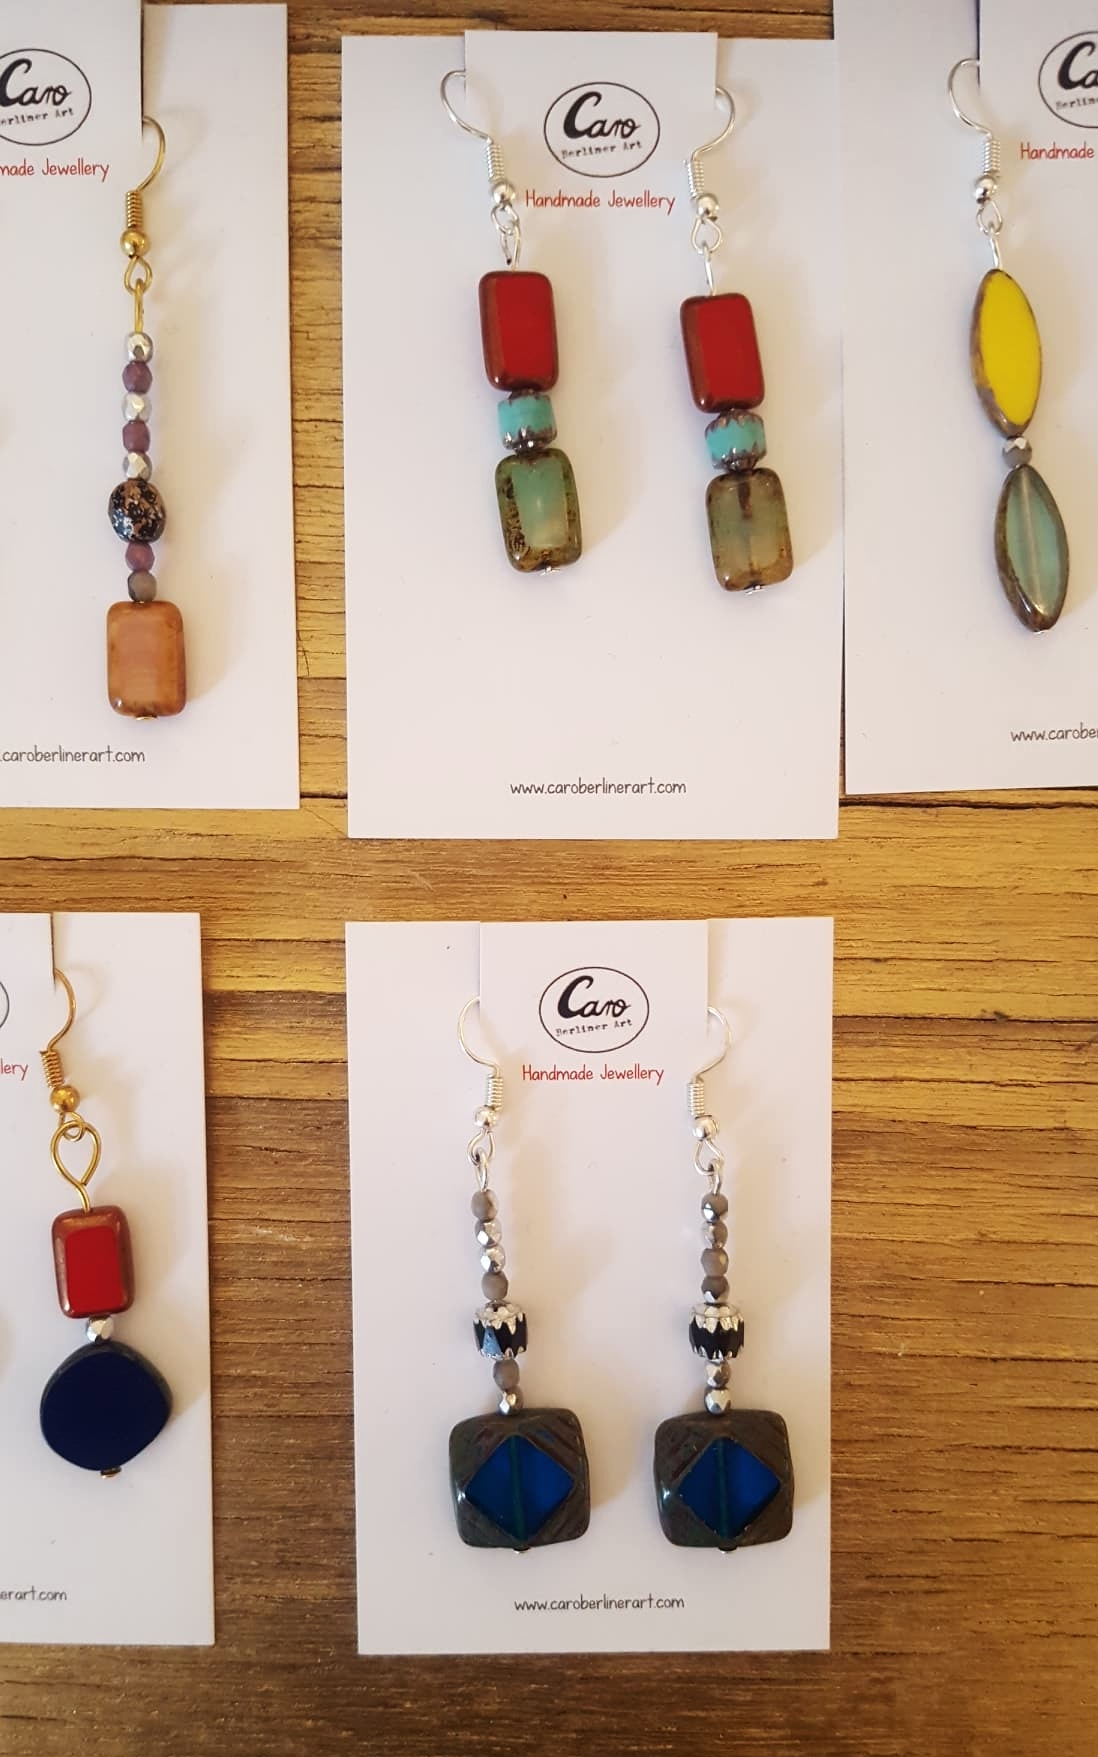 JEWELLERY COLLECTION - HANDMADE BY CARO BERLINER ART